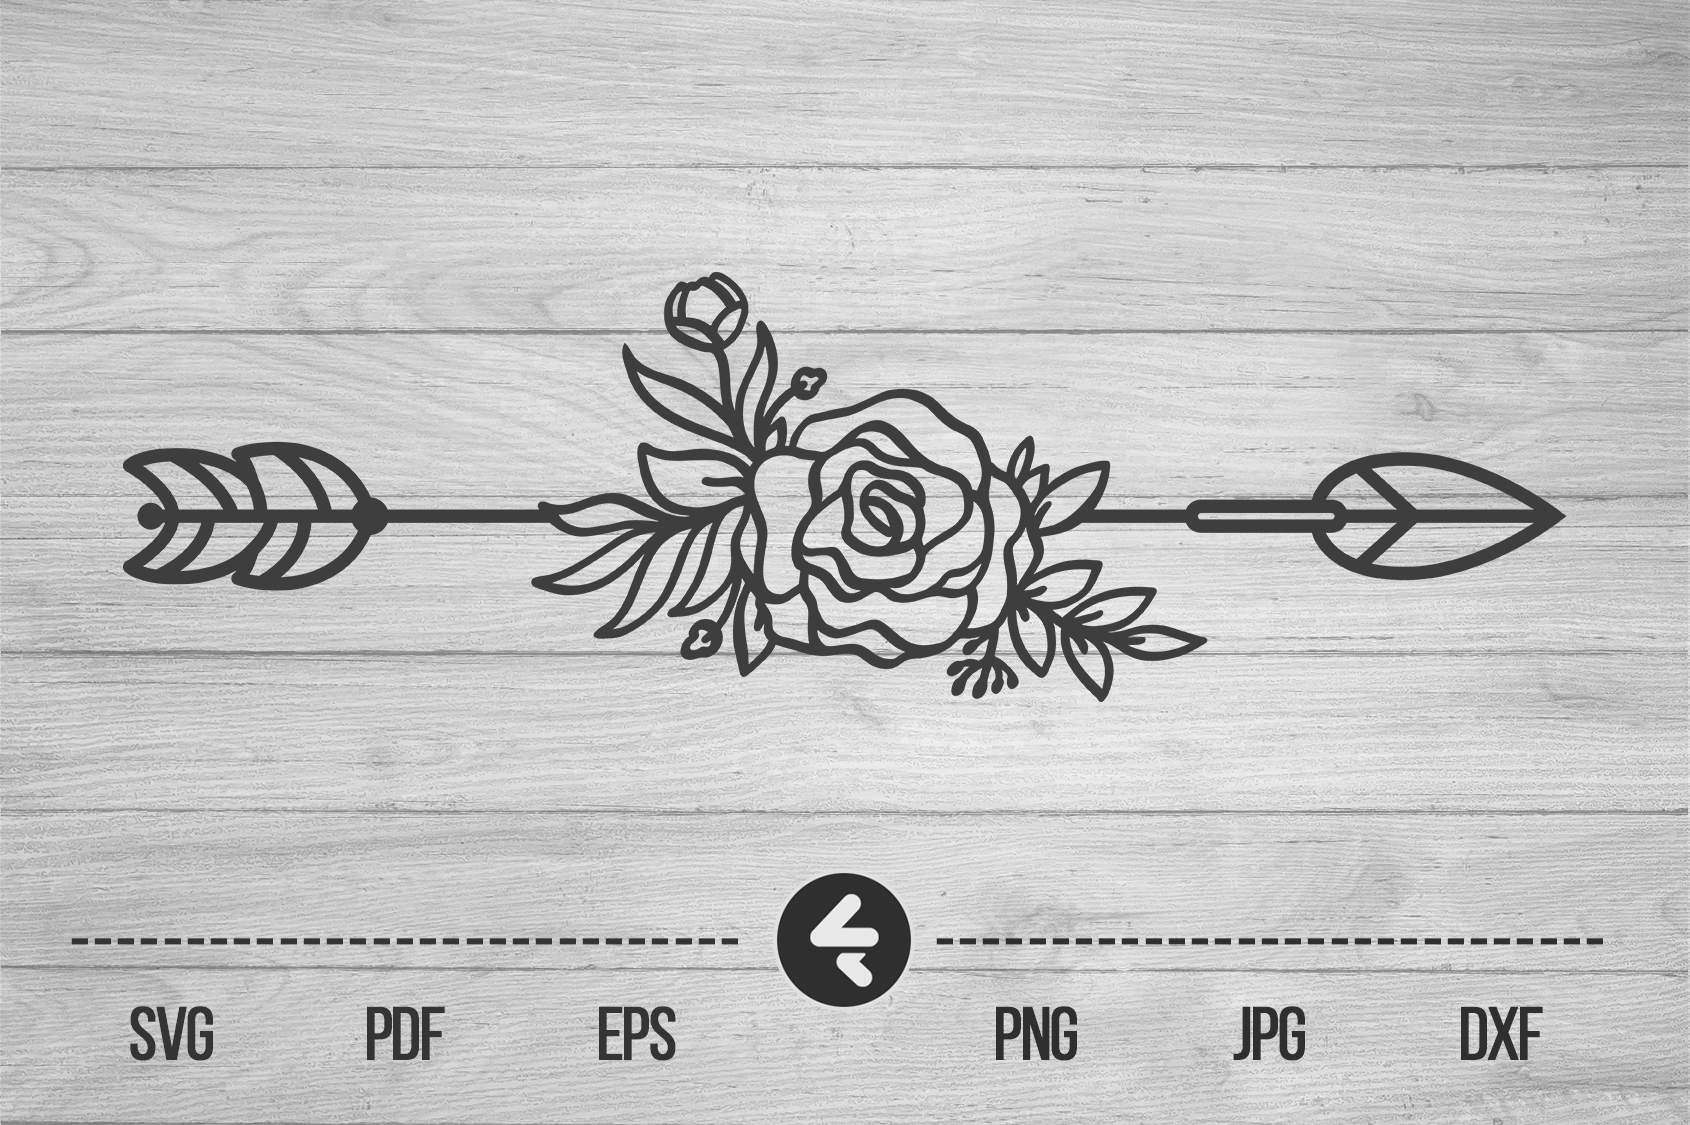 Download Free Flower Arrow Shillouete Graphic By Flocalliastore Creative Fabrica for Cricut Explore, Silhouette and other cutting machines.